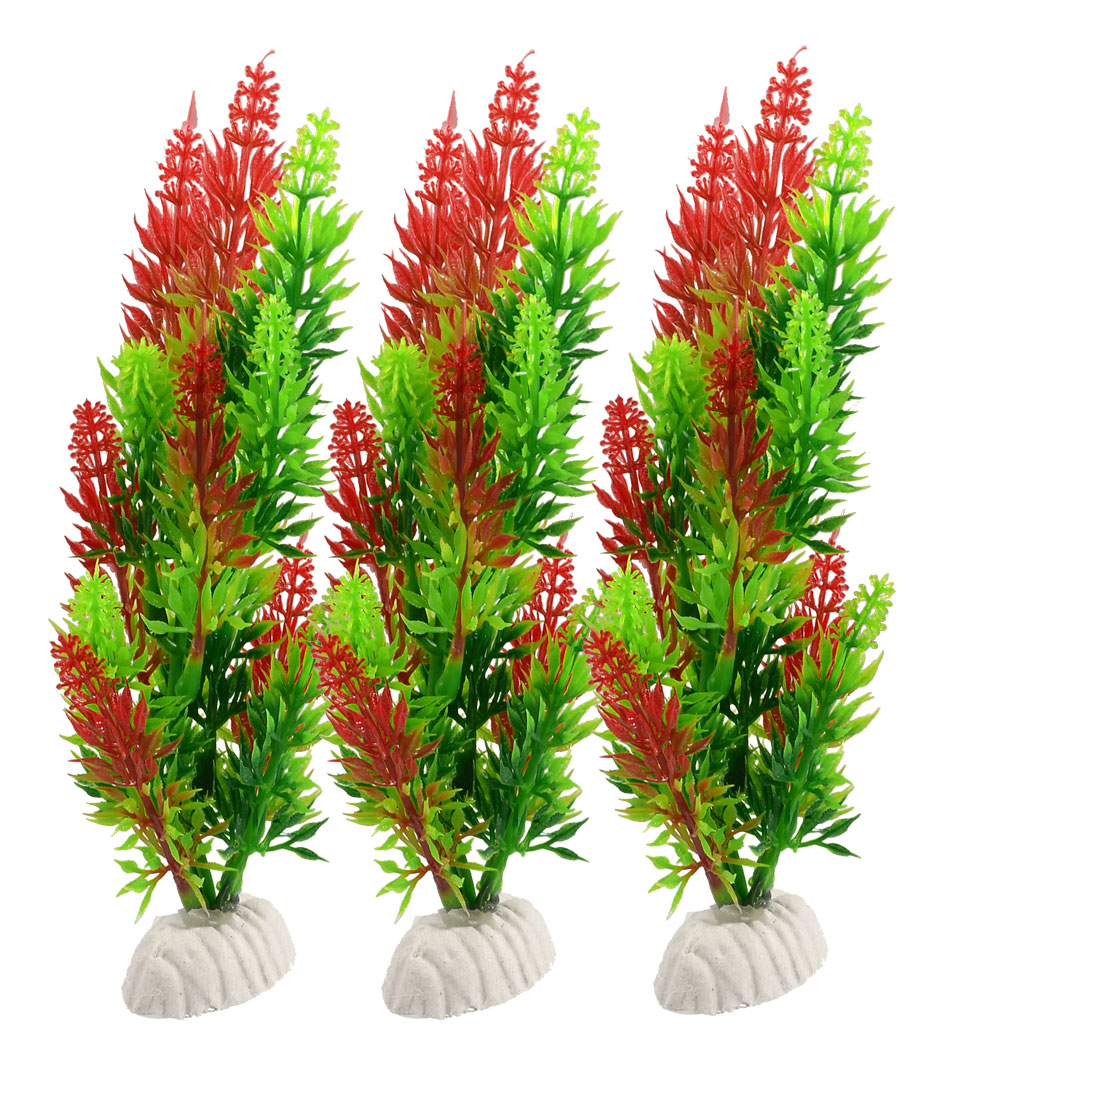 "6.7"" Height Red Green Plastic Leaves Simulation Grass Decor 3 Pcs"